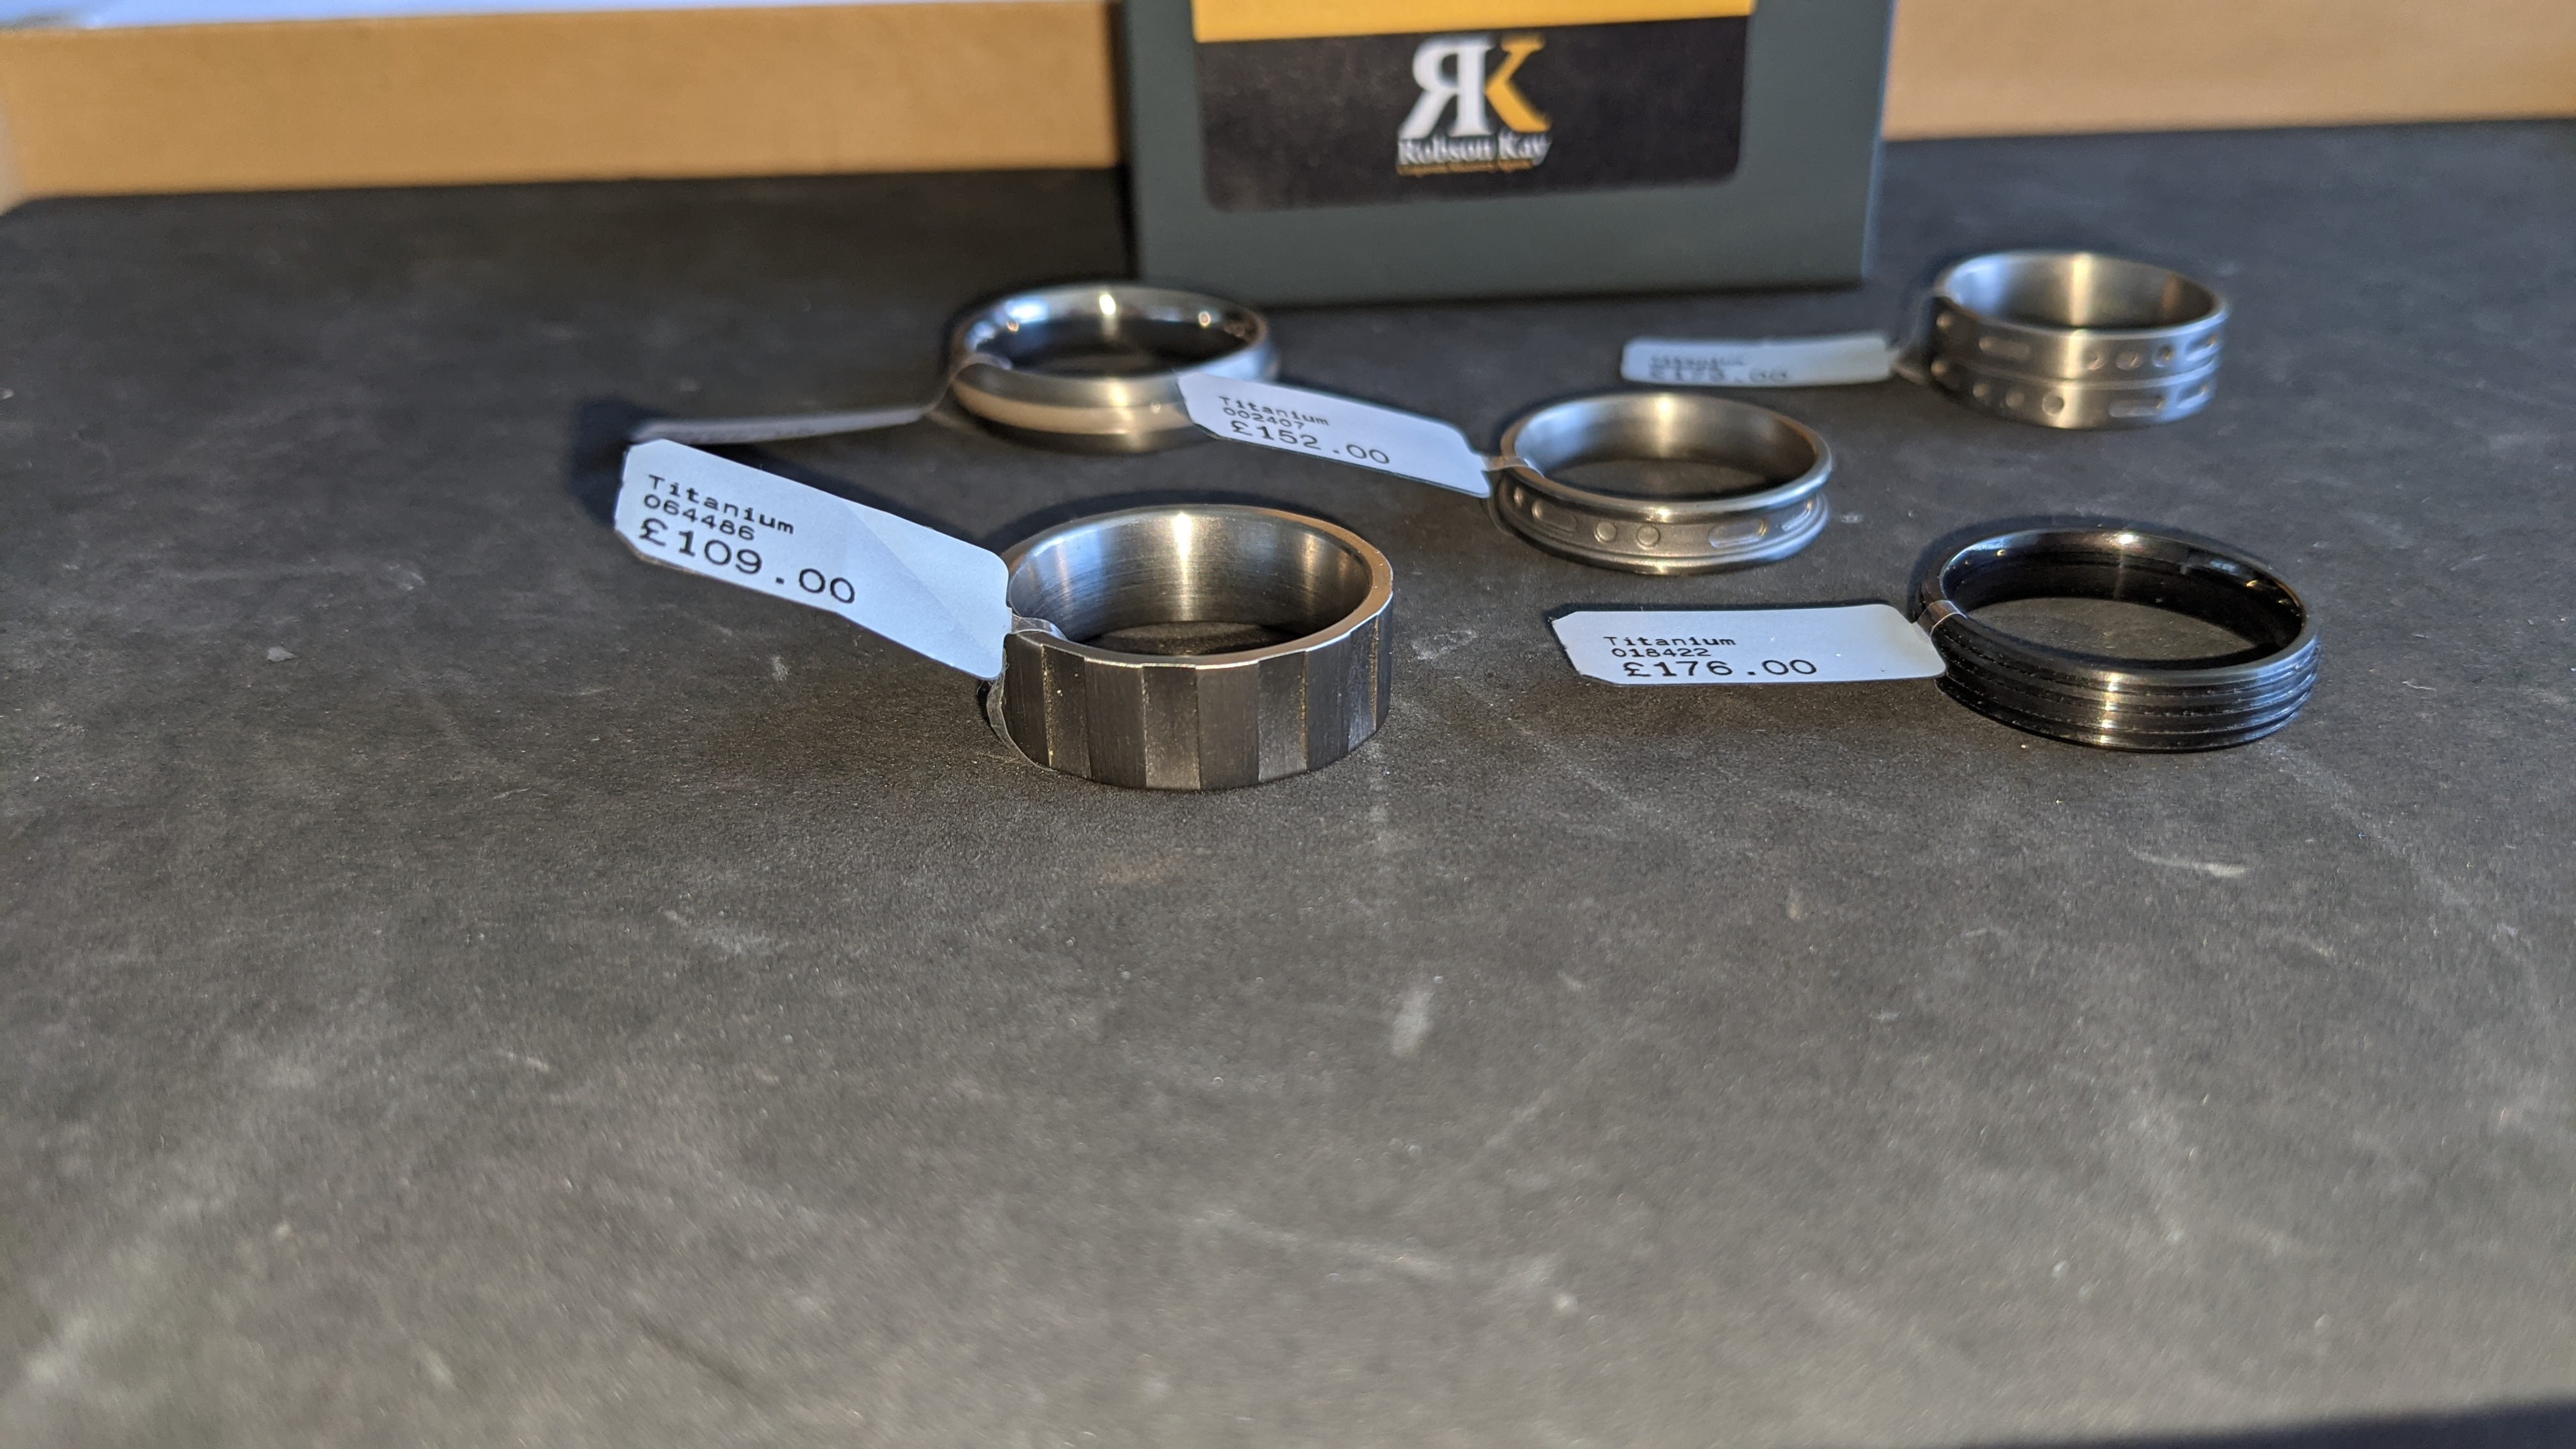 5 off assorted titanium rings with RRP from £109 - £179 per ring. Total RRP is £785 - Image 6 of 13